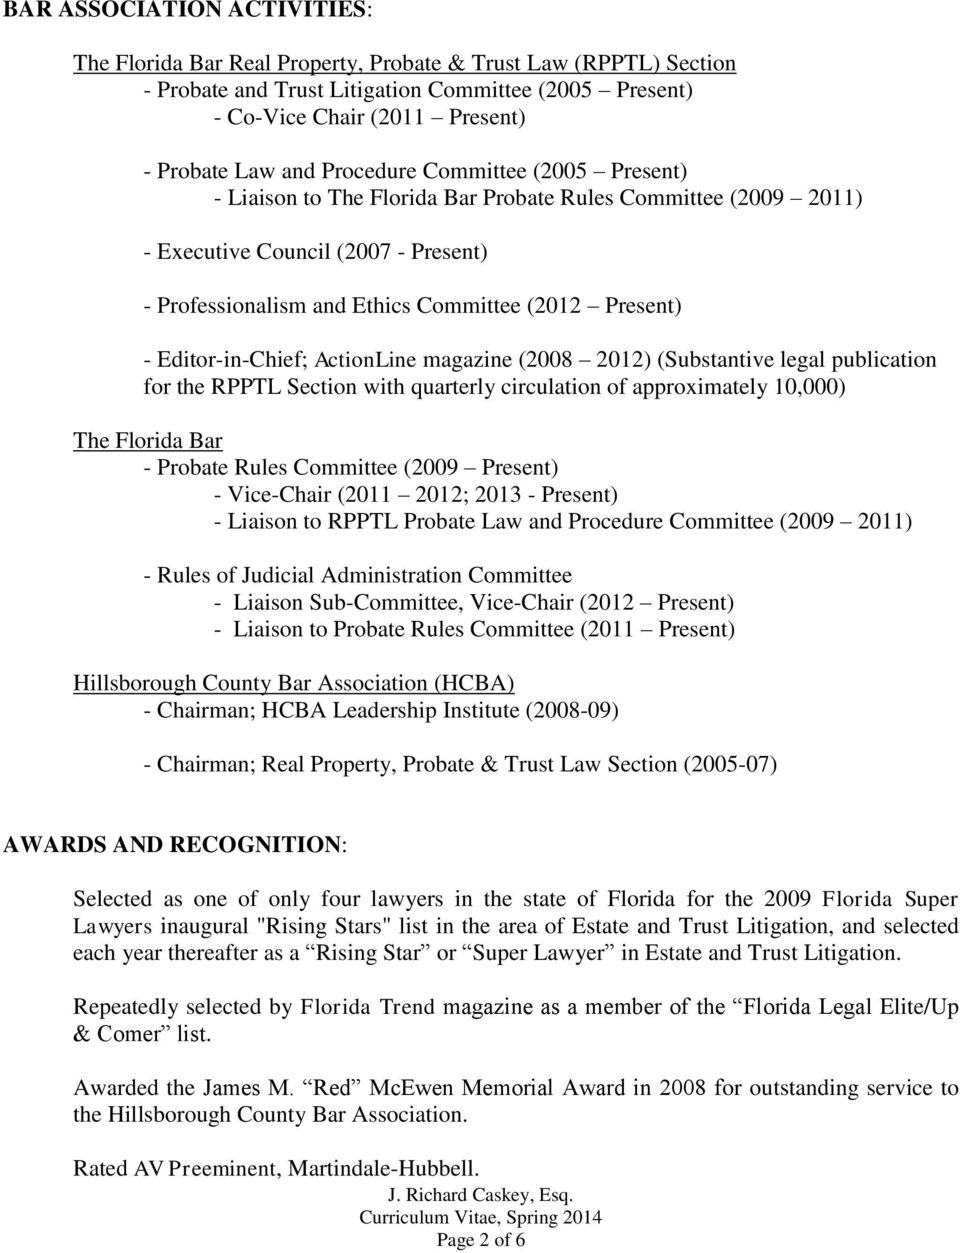 Editor-in-Chief; ActionLine magazine (2008 2012) (Substantive legal publication for the RPPTL Section with quarterly circulation of approximately 10,000) The Florida Bar - Probate Rules Committee